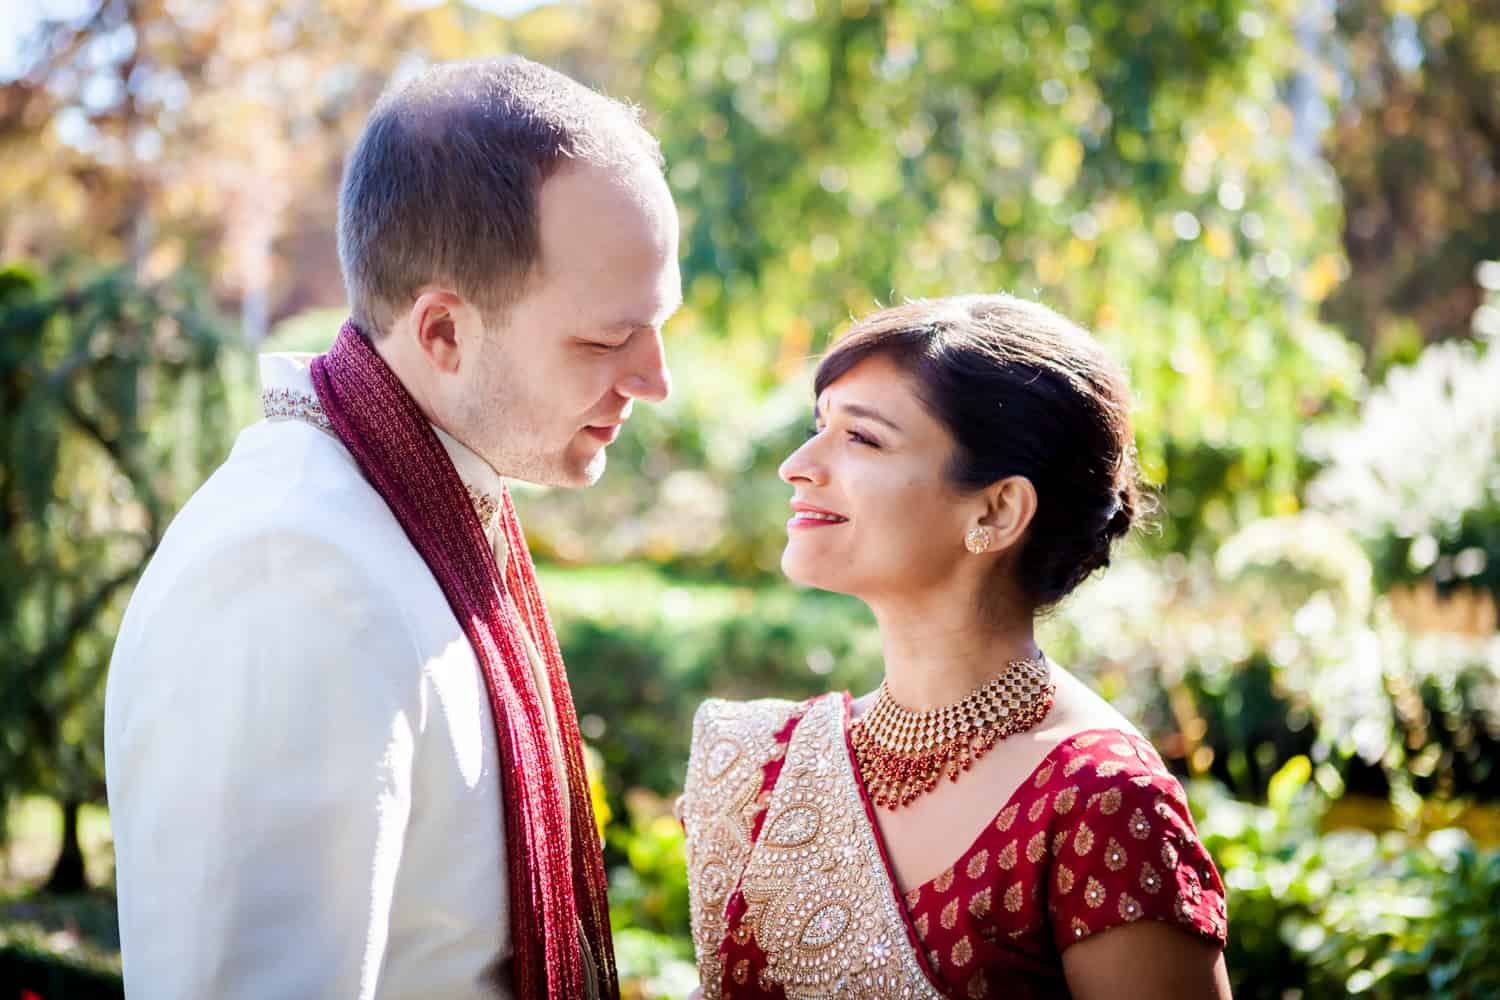 Bride and groom wearing traditional wedding attire at an East Wind Inn wedding